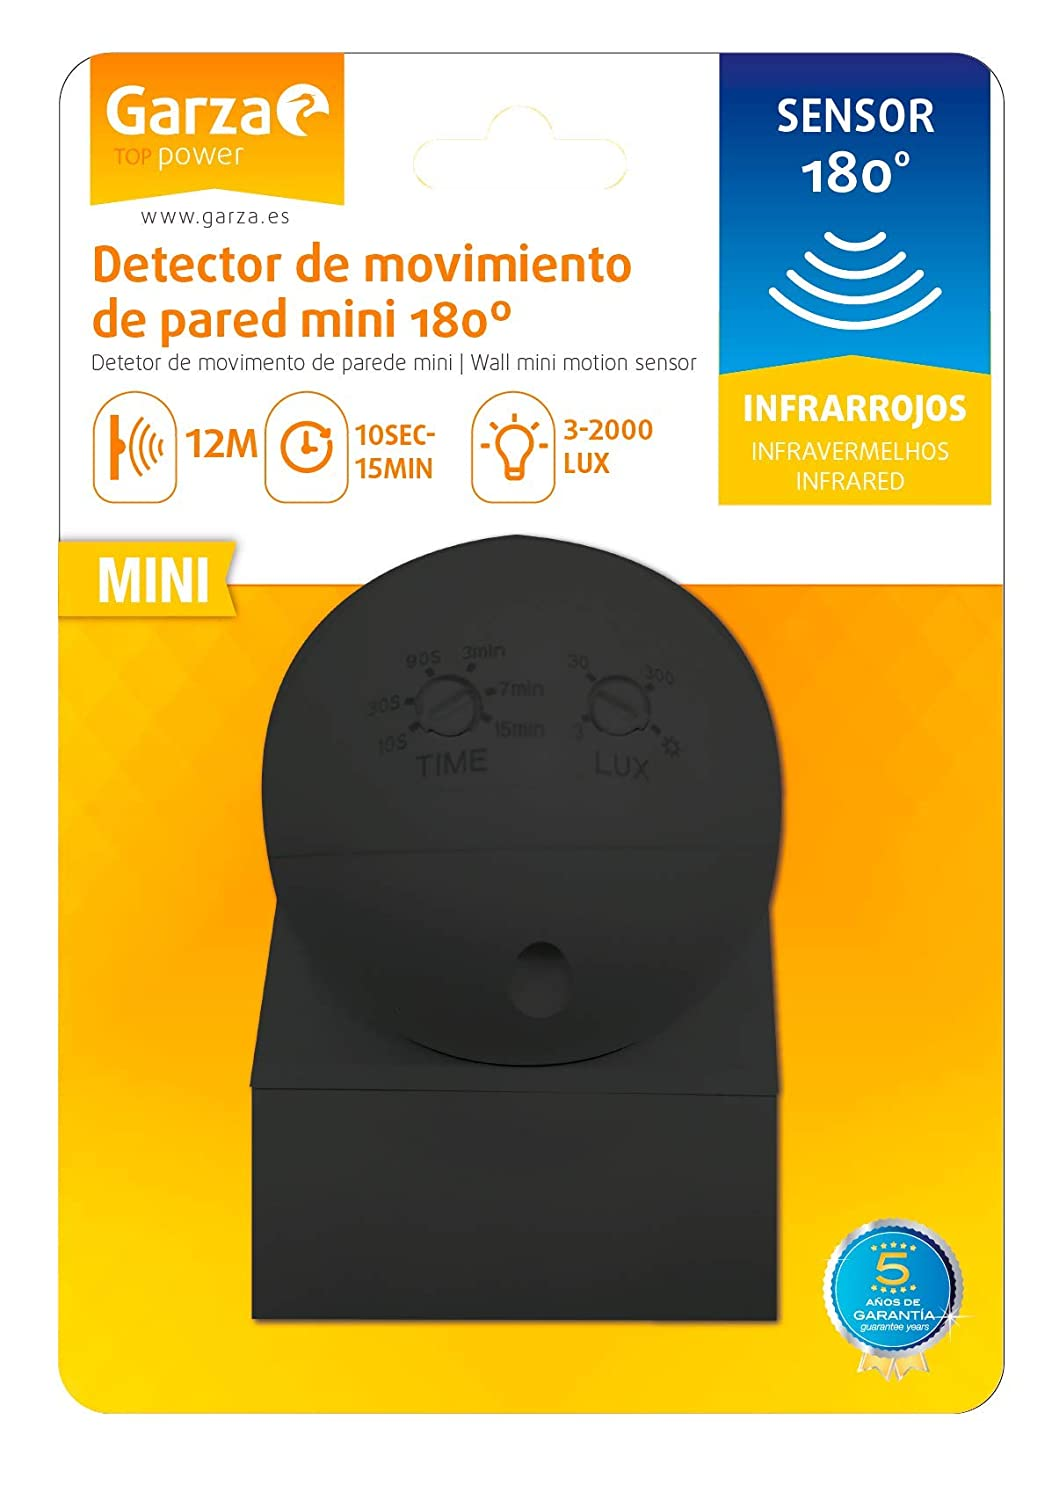 Amazon.com: Heron 430069 Power-Detector Movement Wall Infrared Mini, Special Outdoor, 180 ° Detection Angle, Colour, Black: Home Improvement